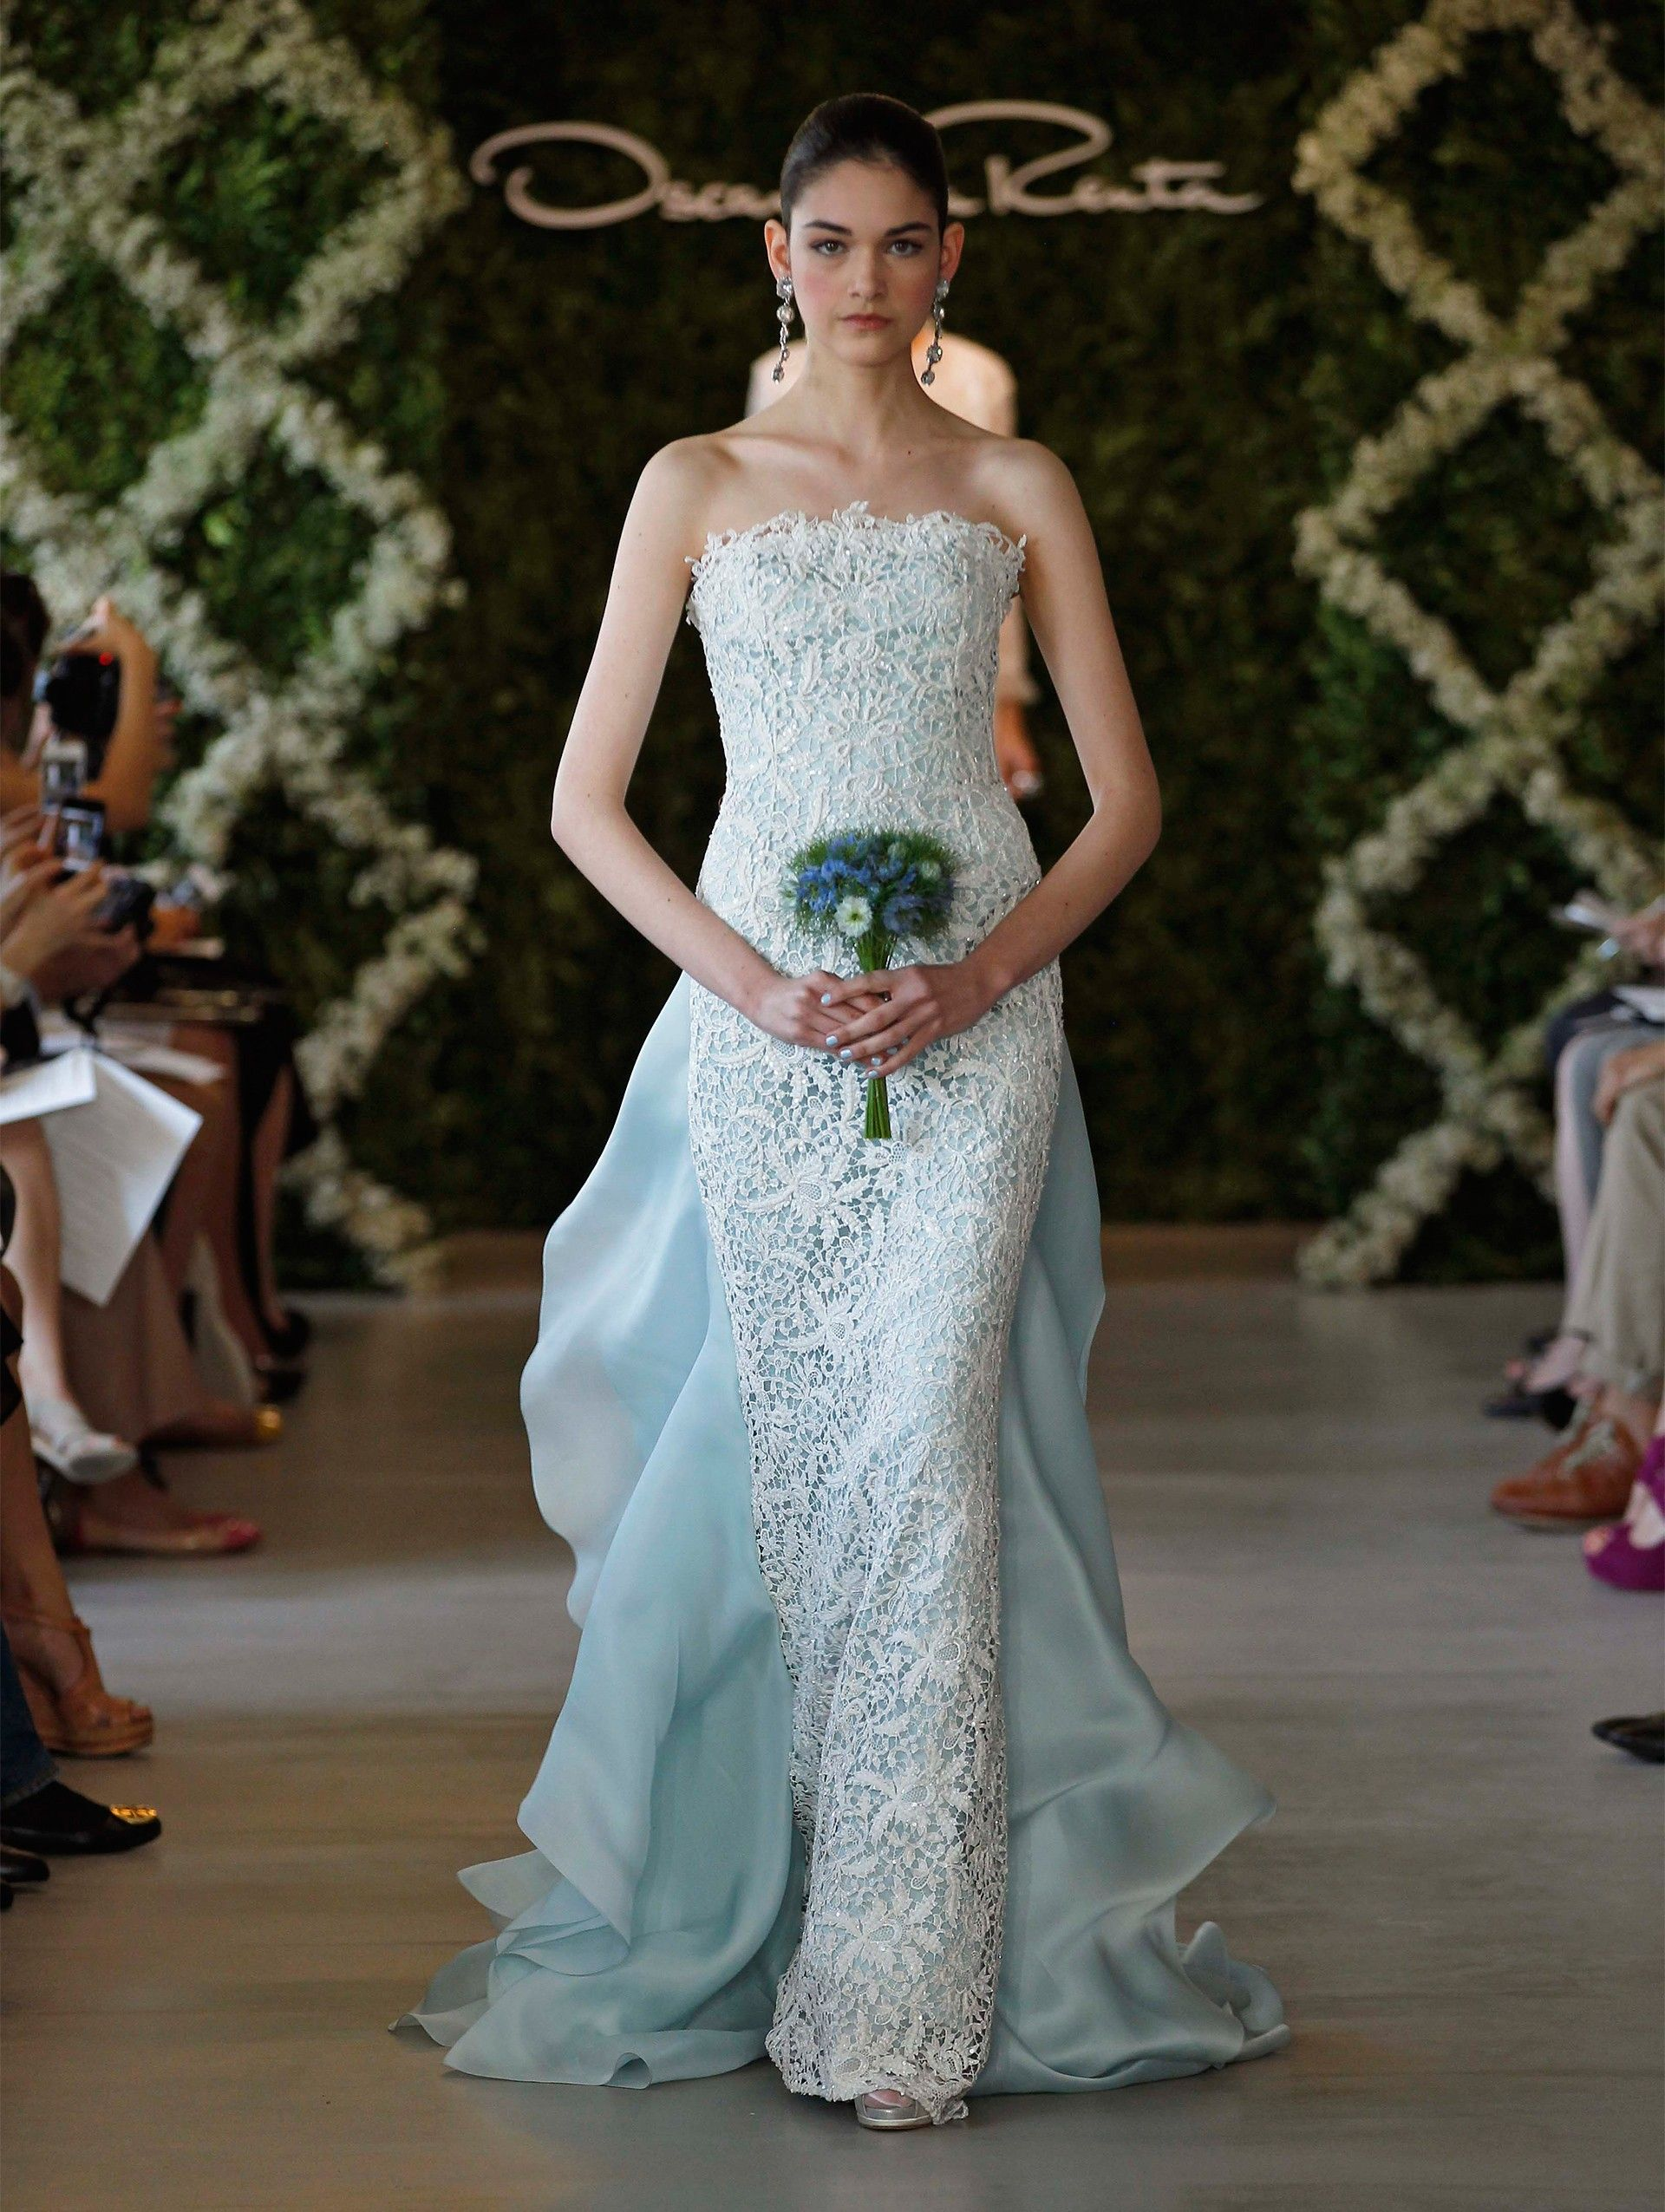 Oscar de la Renta - Bridal 2013 Look 21; one of my all time favorit ...